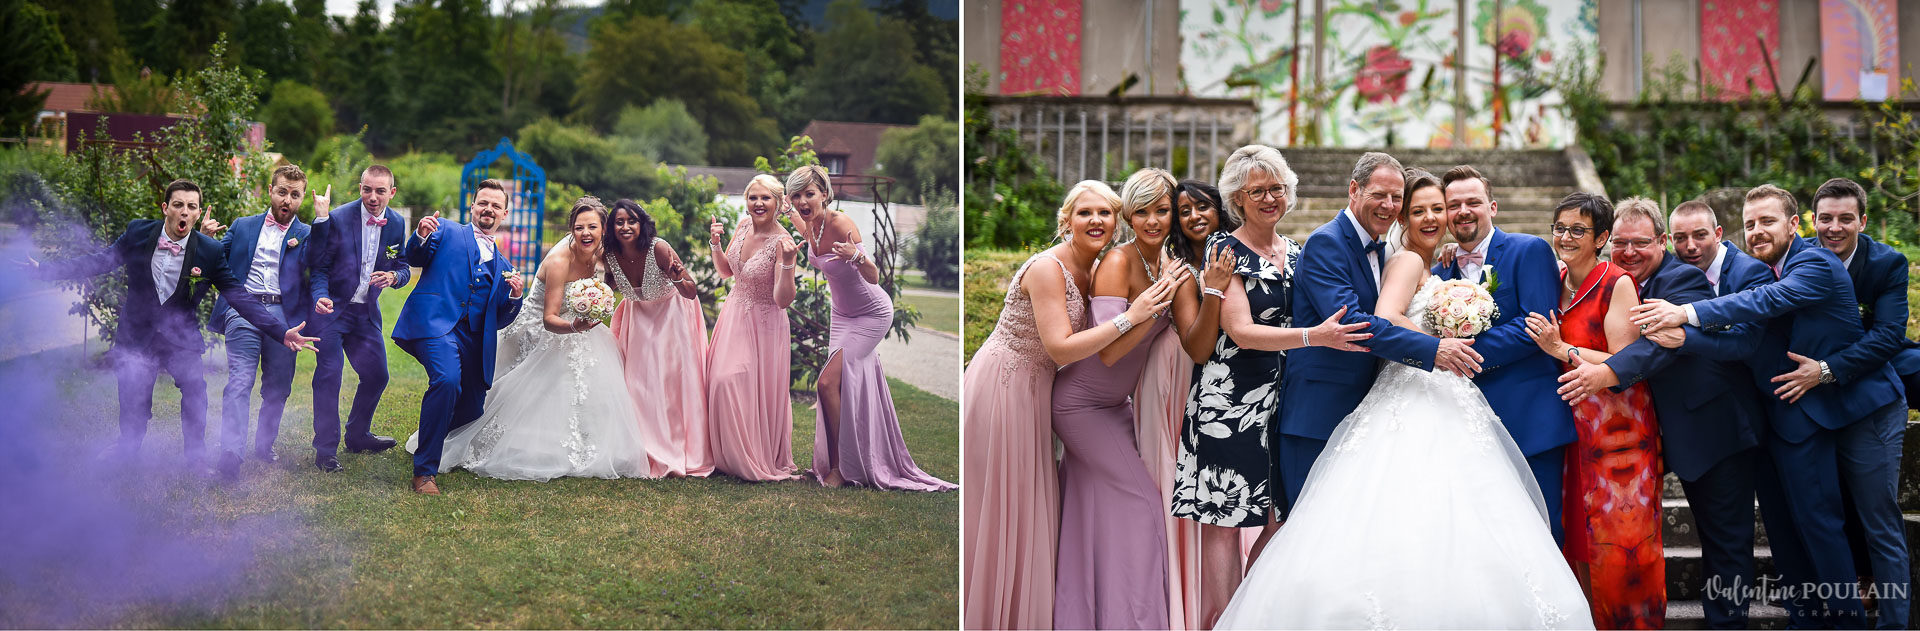 Mariage cool ferme weyerbach - Valentine Poulain proches